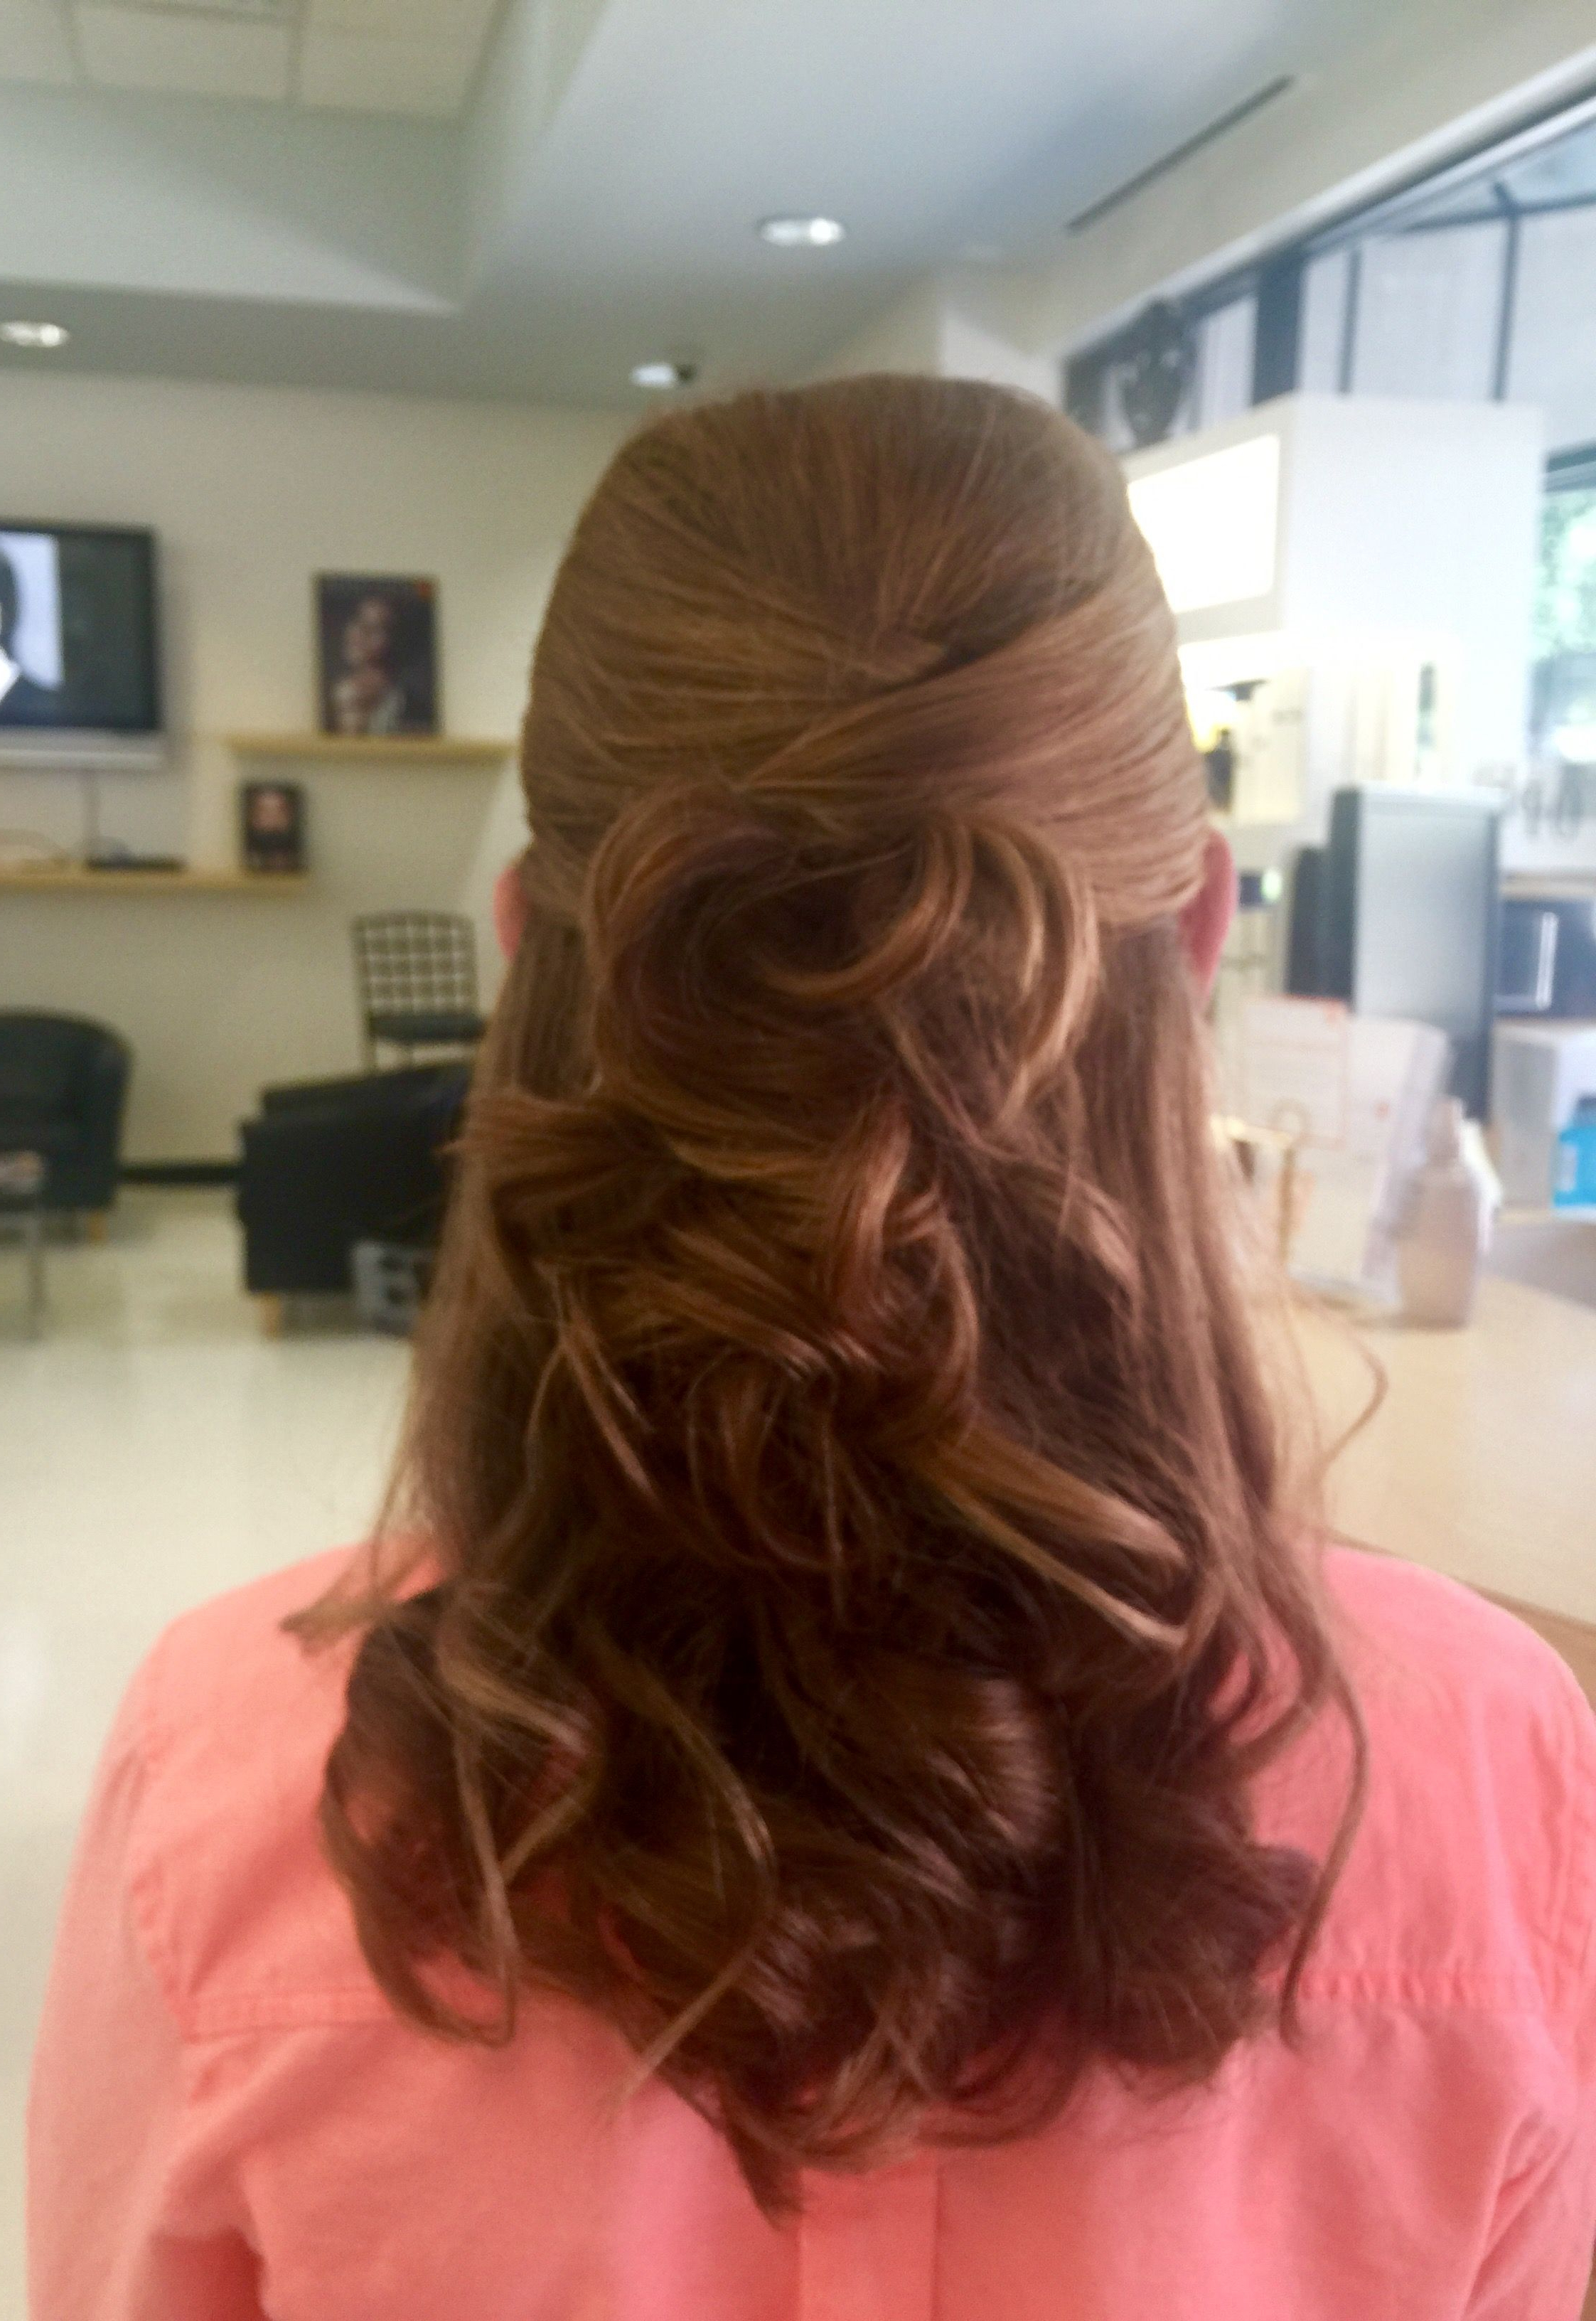 Fashionable Criss Cross Wedding Hairstyles Throughout Criss Cross Half Up Half Down Updo W/ Loose Curls (View 3 of 20)